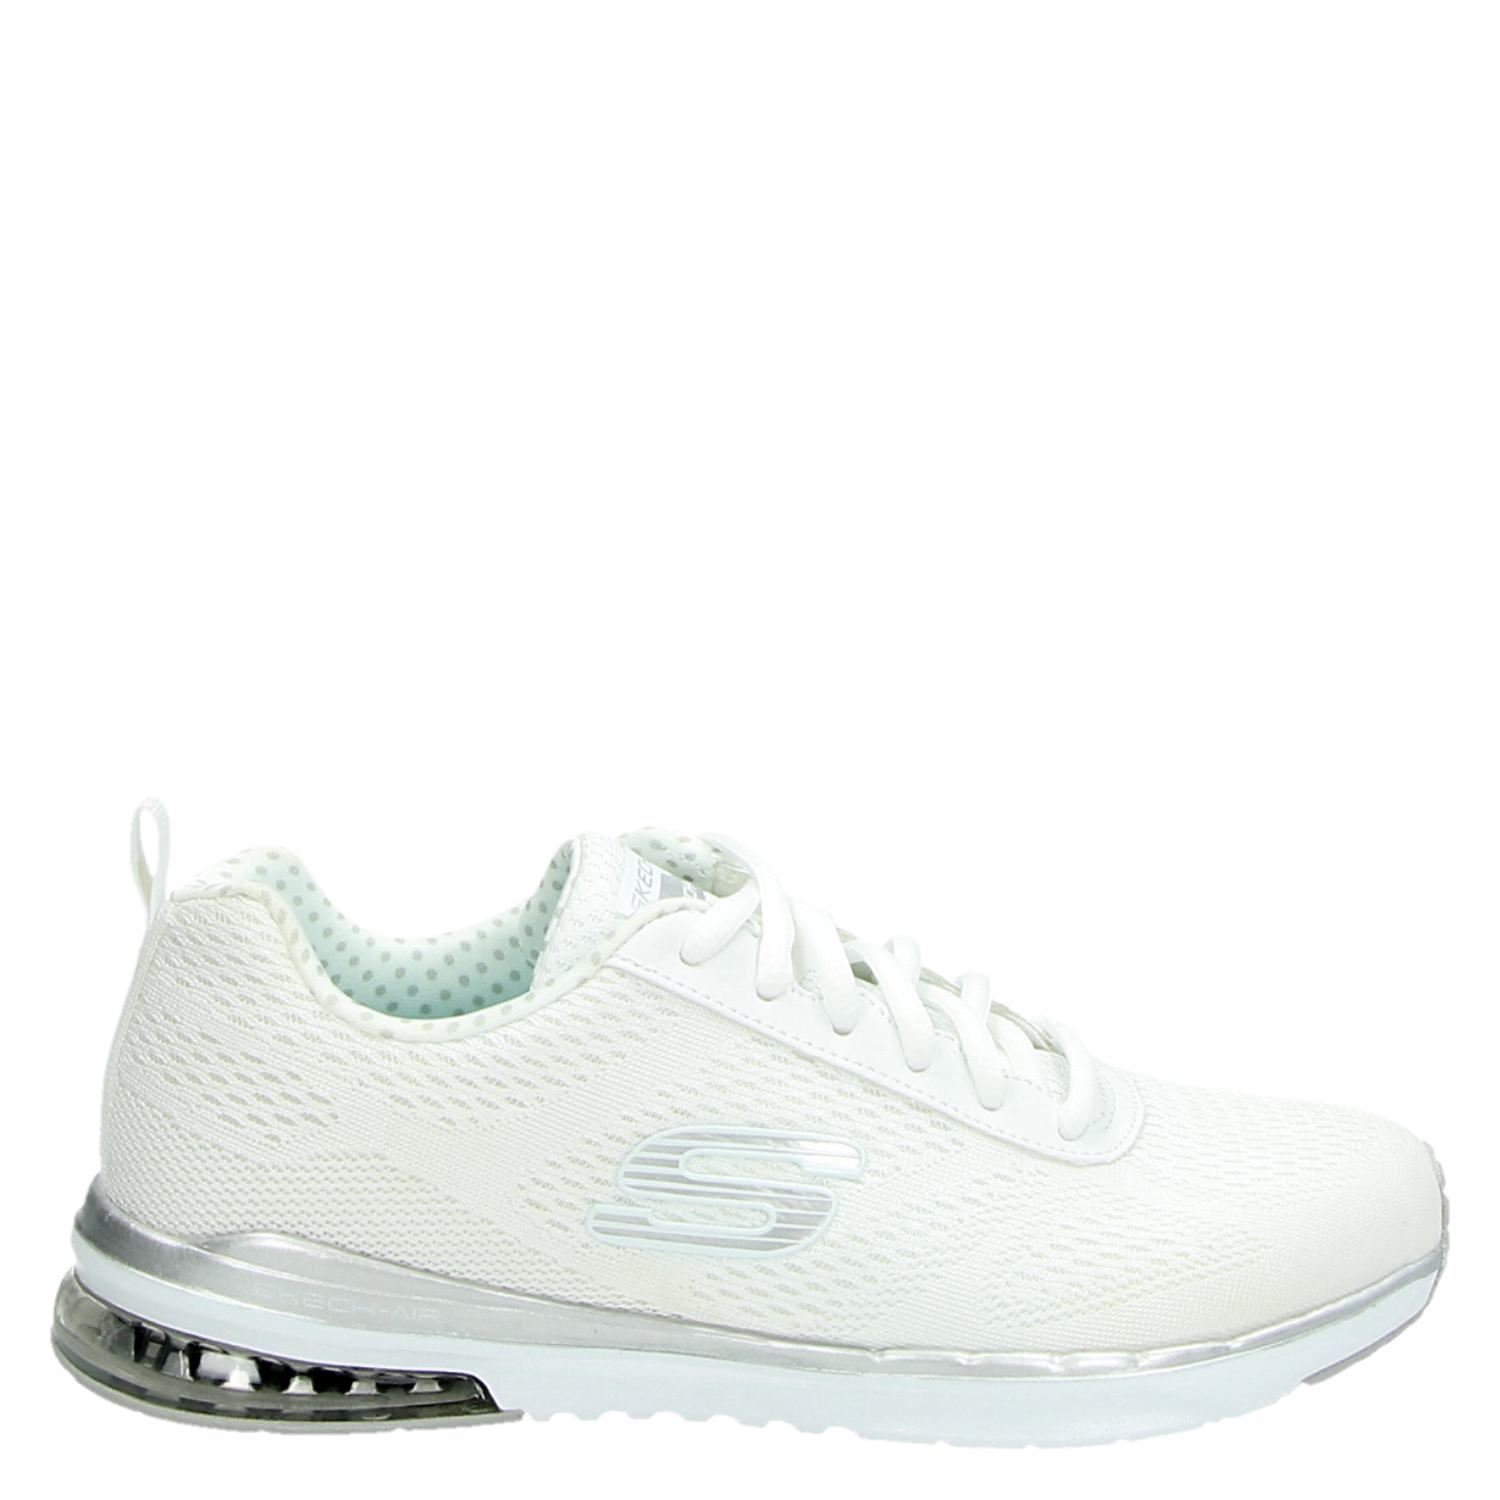 new styles hot sale hot new products Skechers Skech-Air Infinity dames lage sneakers wit